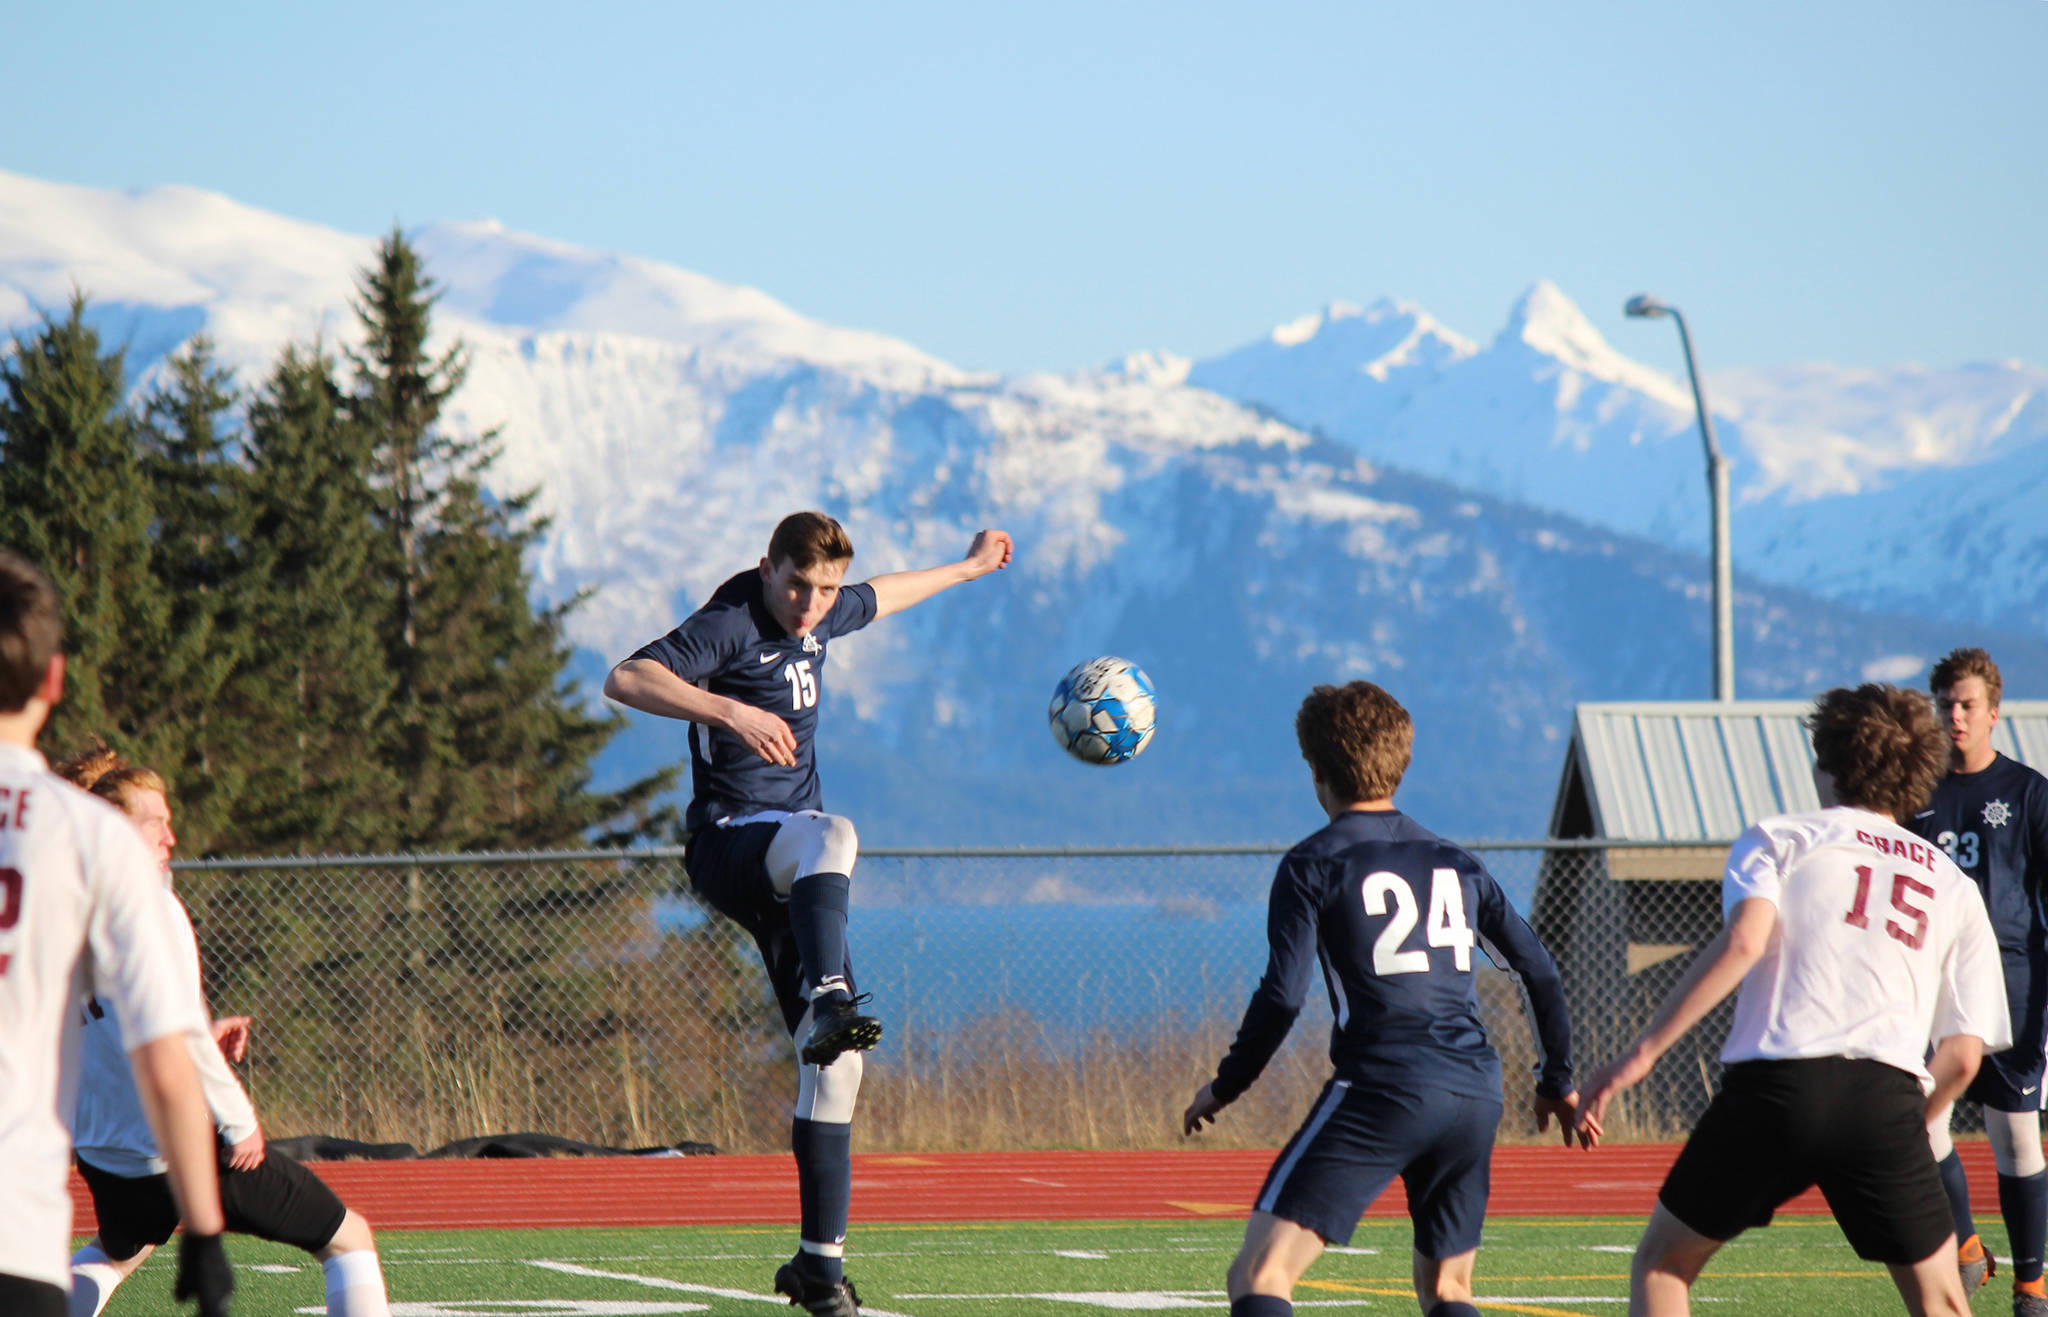 Homer Mariner Ethan Pitzman, 15, keeps the ball in play during Friday's game against Grace Christian, Friday, April 26, 2019, at the high school in Homer, Alaska while teammates Austin Shafford, 24, and Henry Russell, 33, keep the Grace Christian team at a distance. (Photo by McKibben Jackinsky)